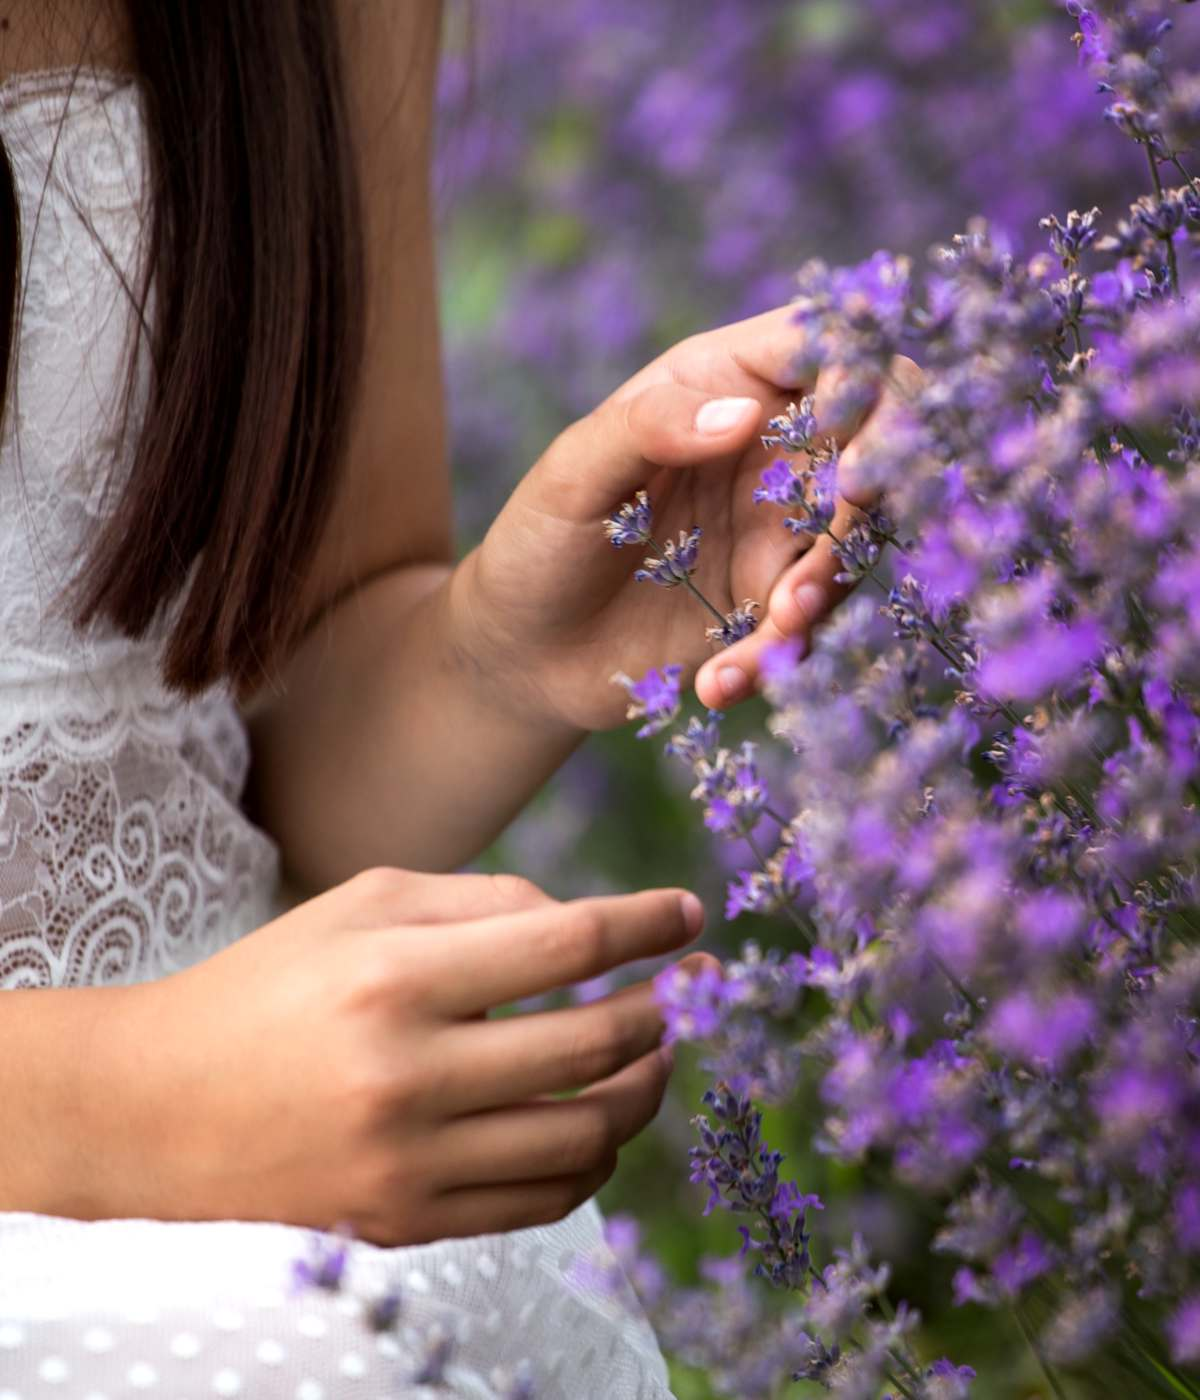 Lavender with a young lady handling the flowers.